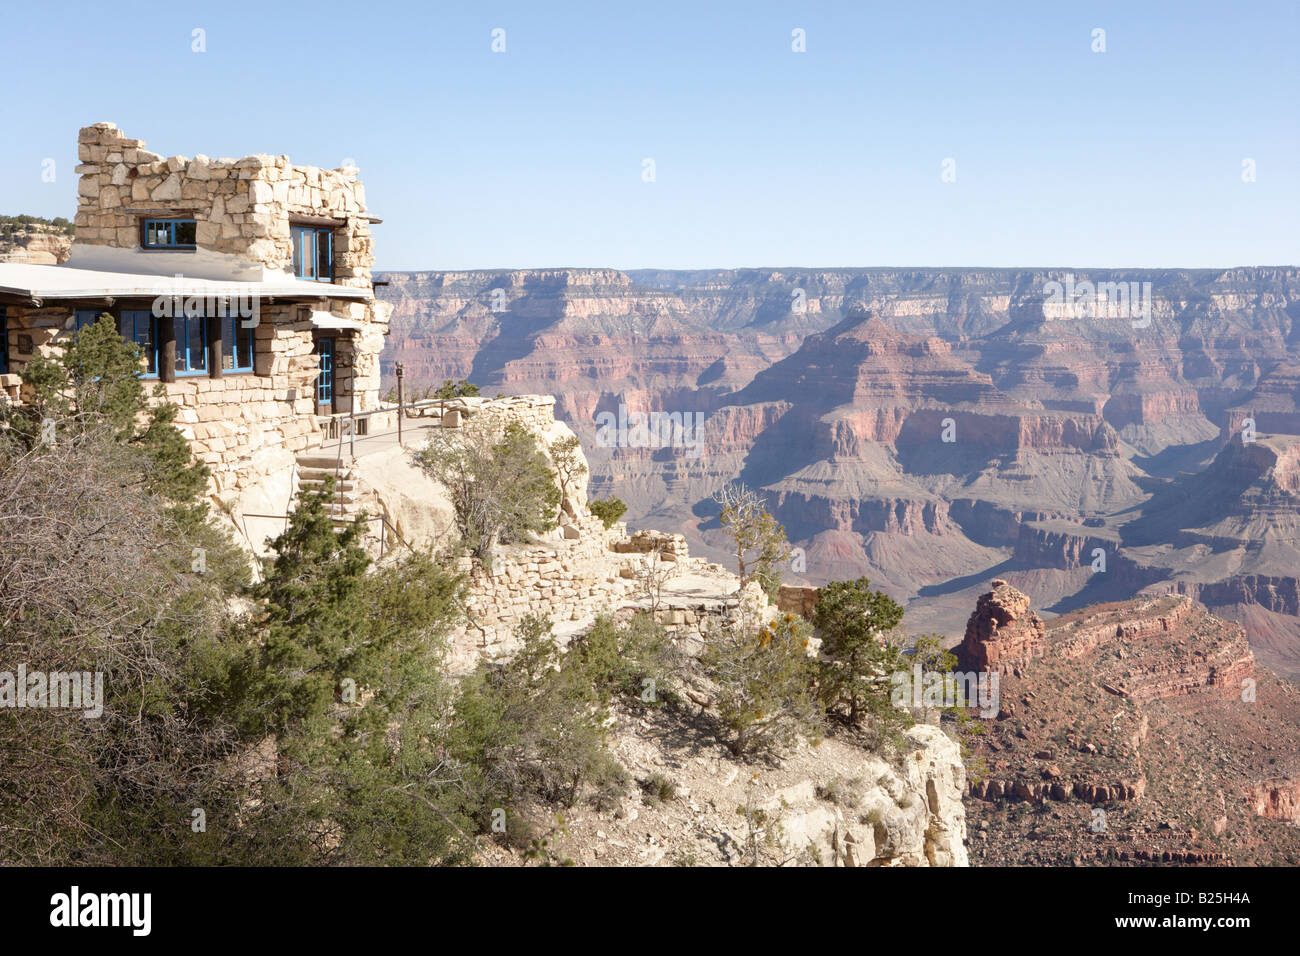 Lookout Studio at Grand Canyon Village in Arizona USA - Stock Image